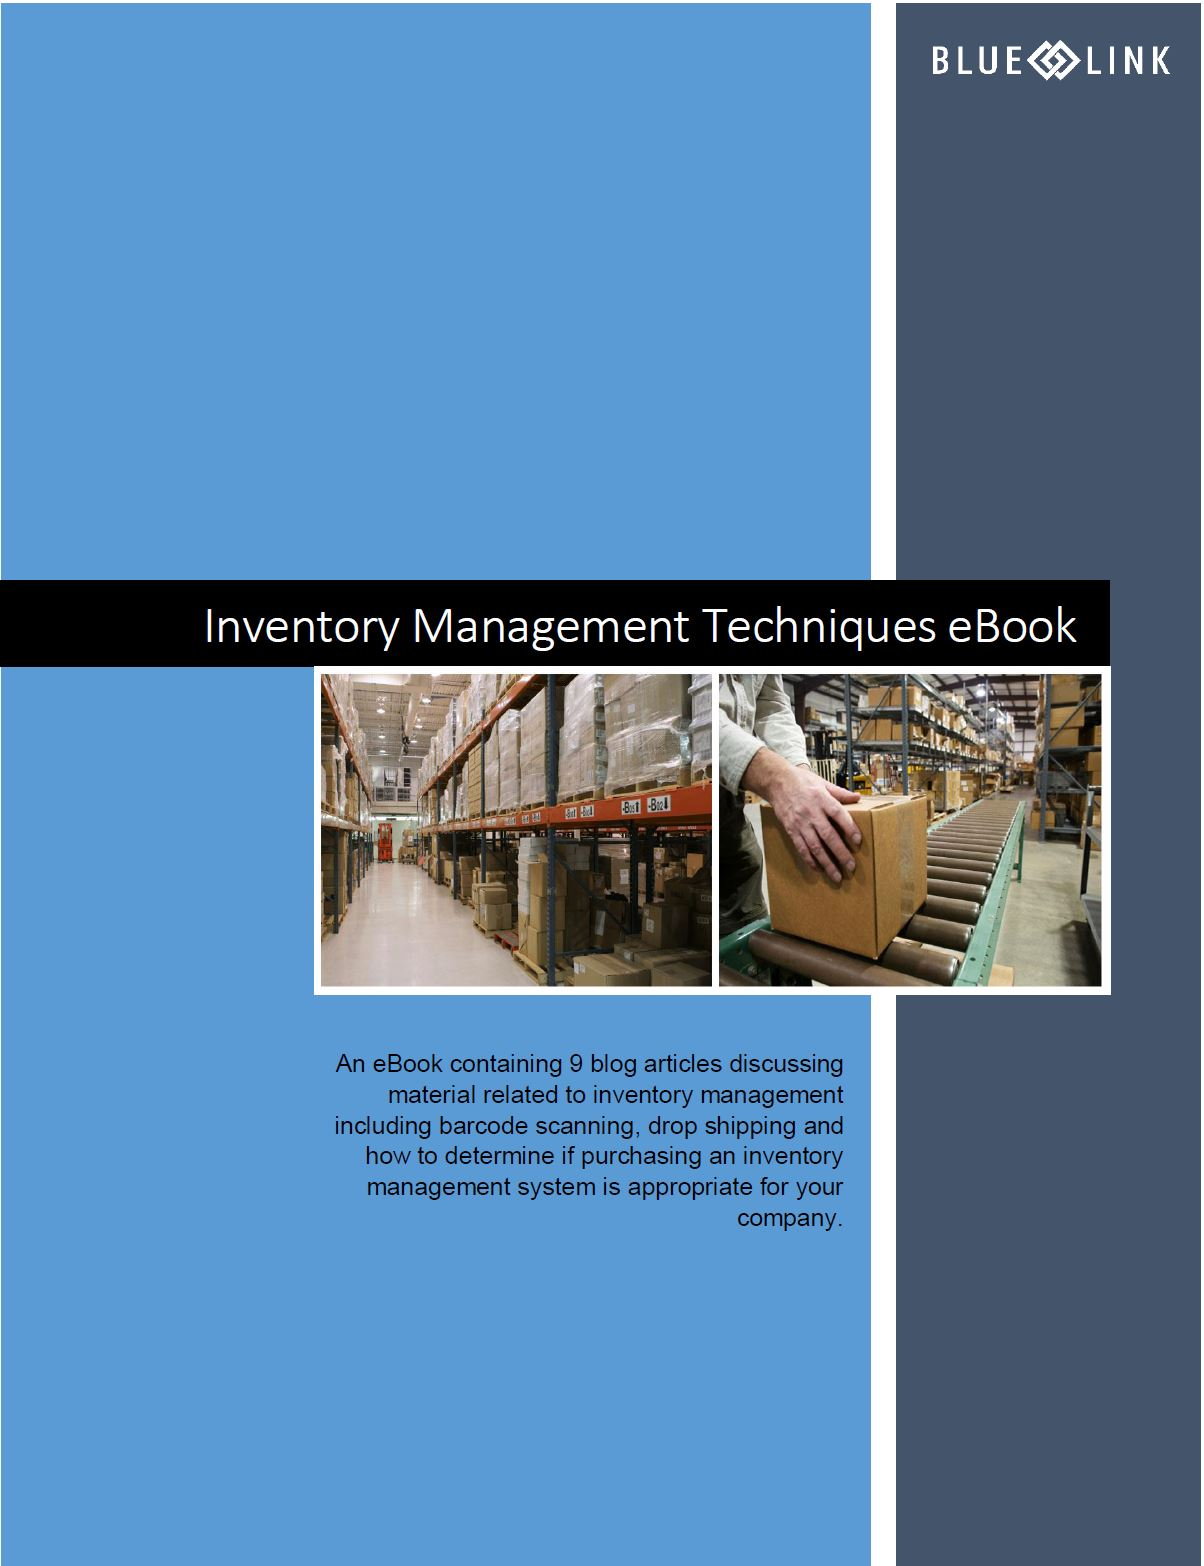 Inventory-ebook-thumbnail.jpg